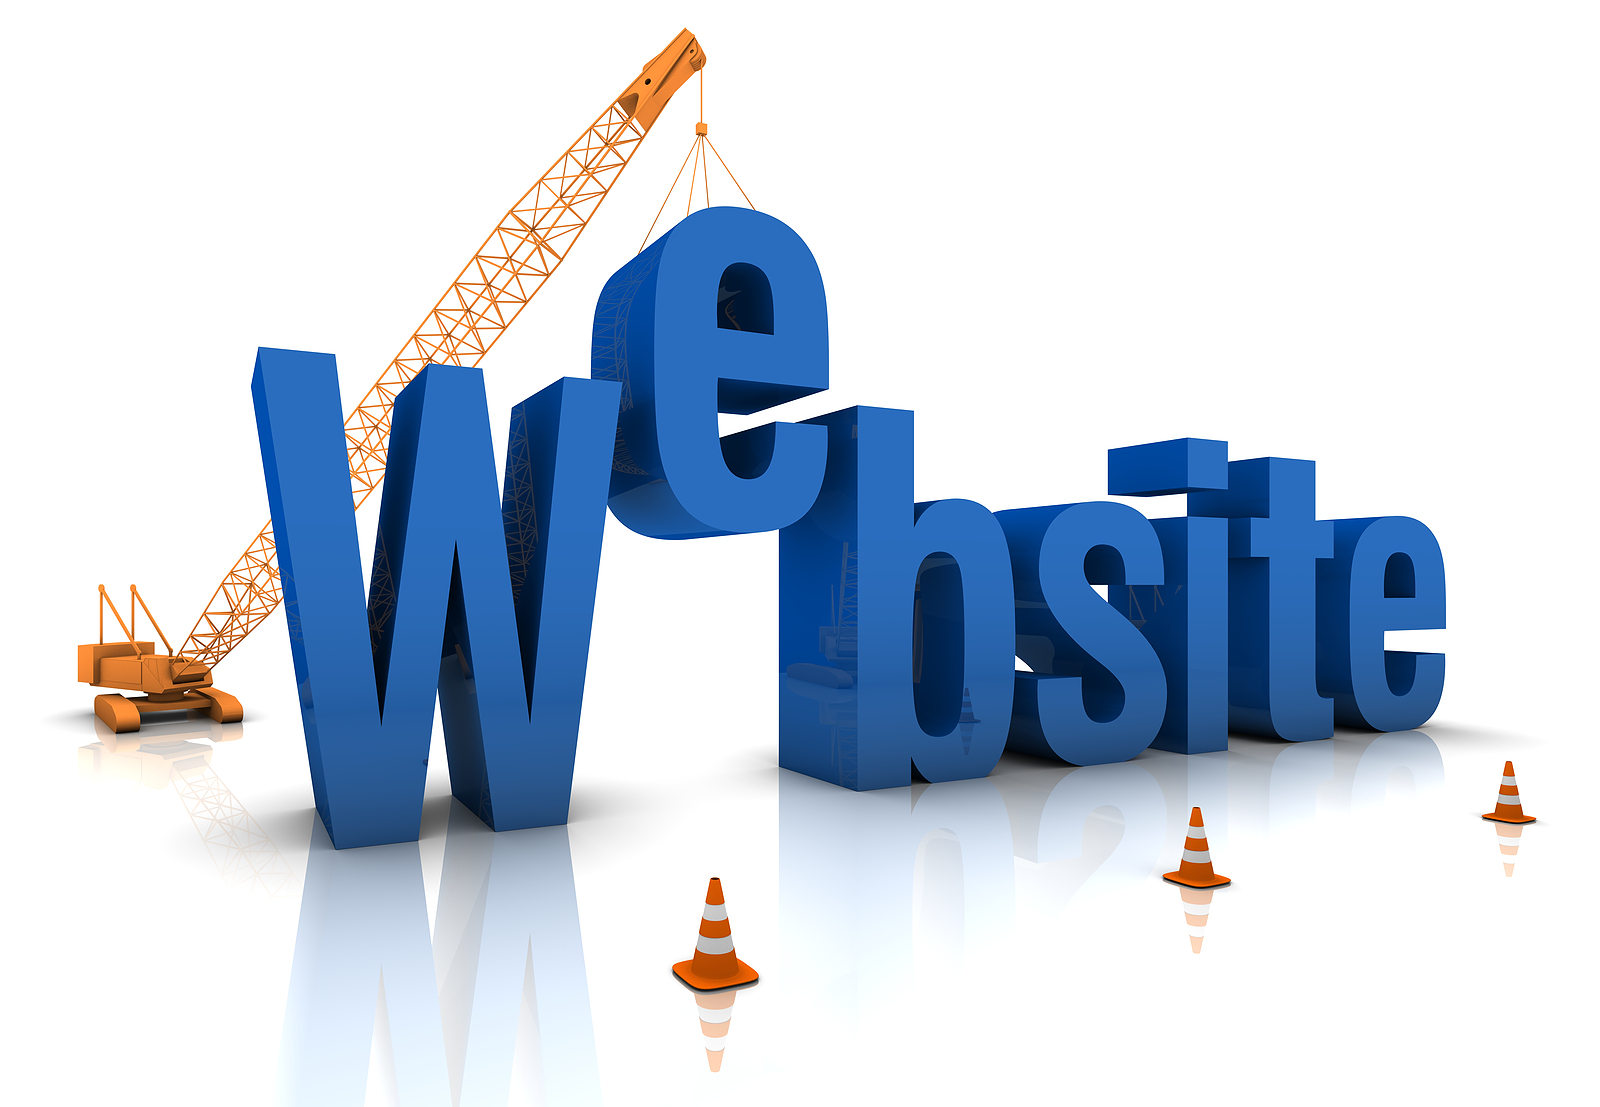 le site internet descriptions explications par neocamino